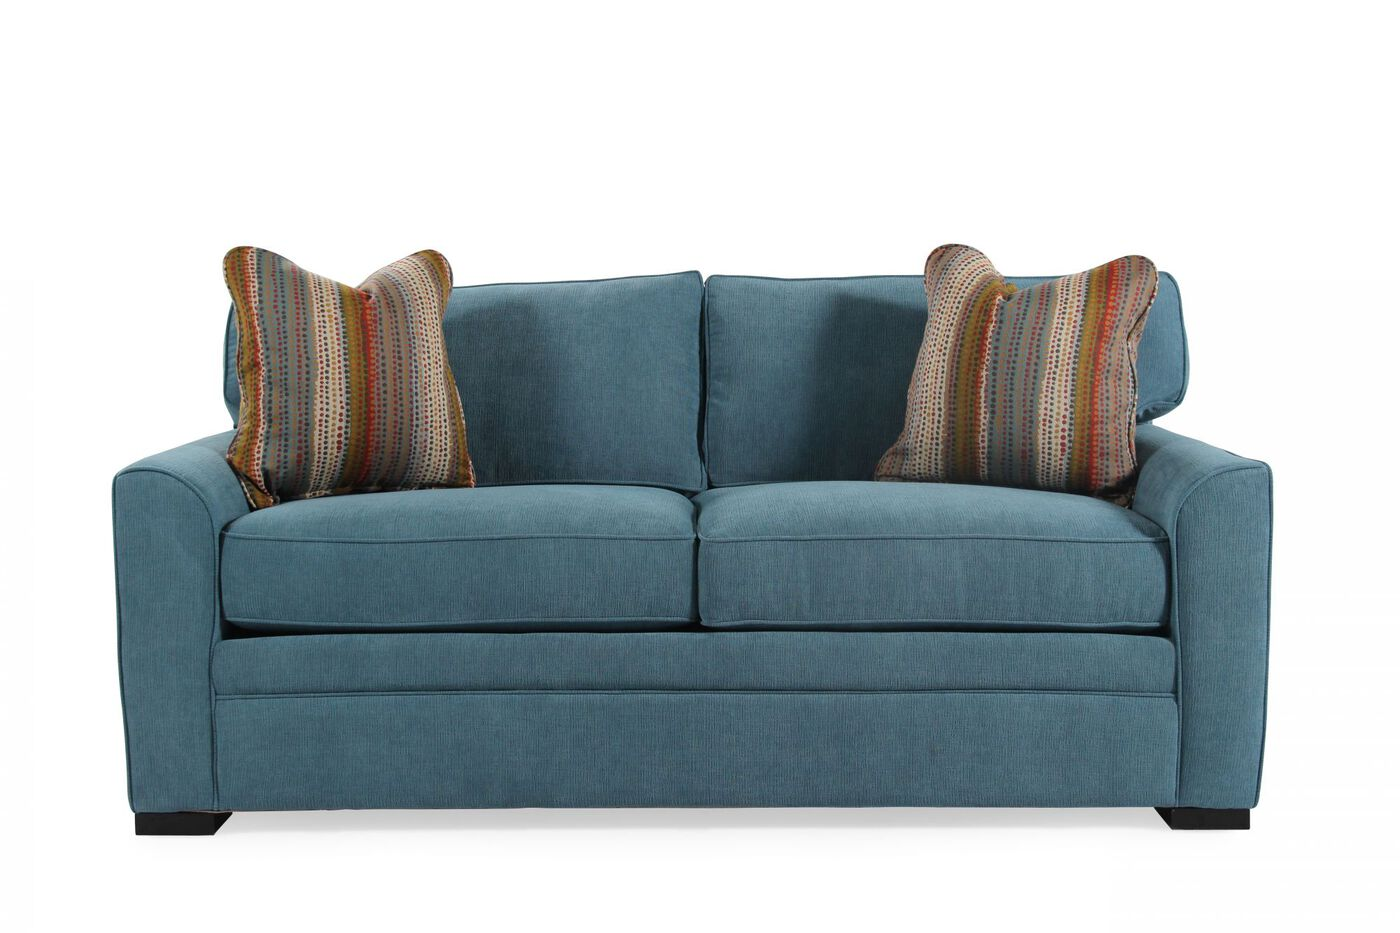 Jonathan Louis Blissful Blue Full Memory Foam Sleeper Sofa Mathis Brothers Furniture